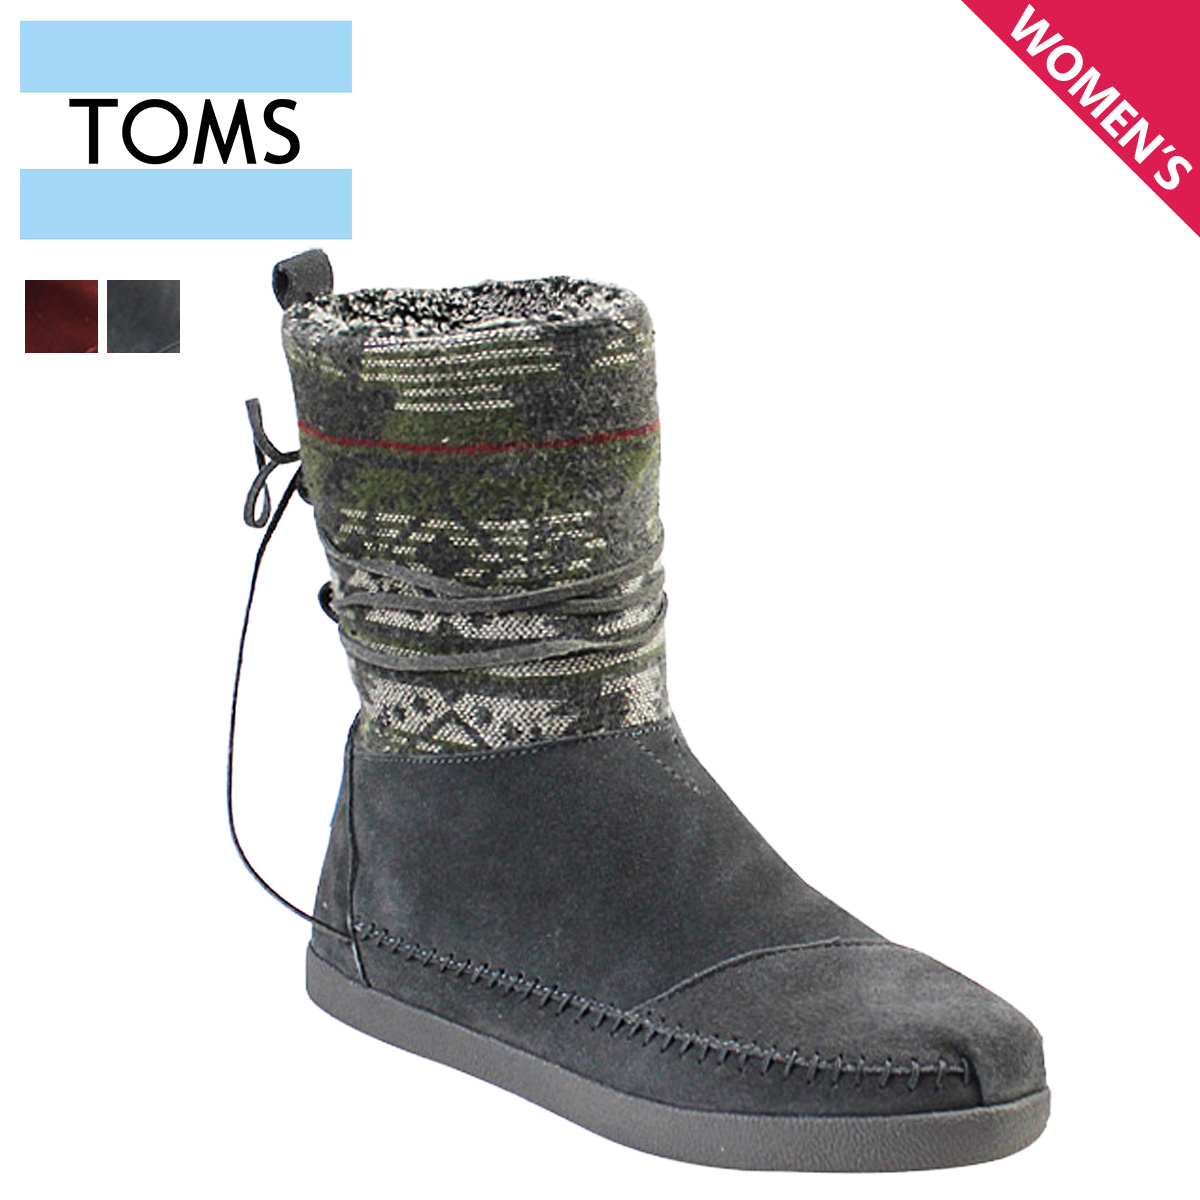 b7f59cd9a Whats up Sports: TOMS SHOES Toms shoes boots SUEDE JACQUARD WOMEN'S ...